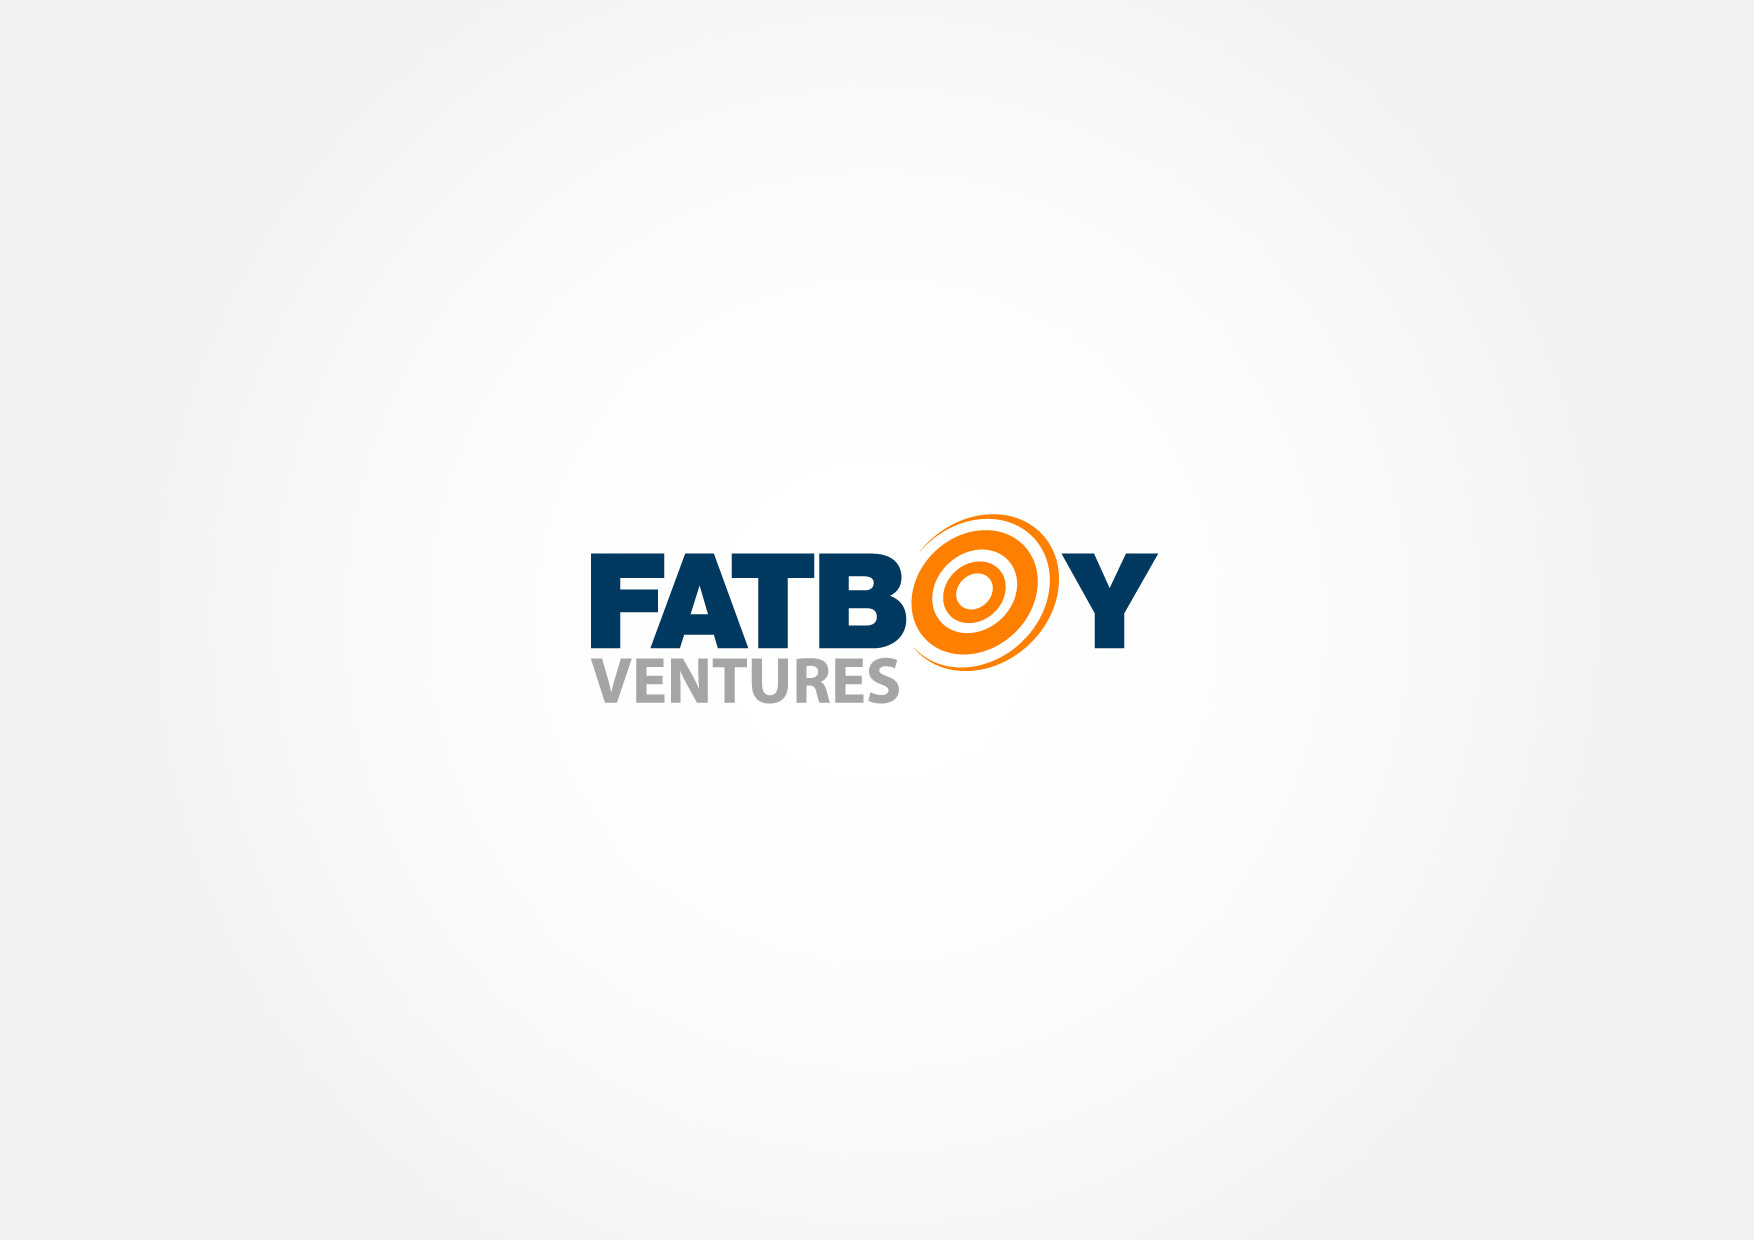 Logo Design by Osi Indra - Entry No. 44 in the Logo Design Contest Fun Logo Design for Fat Boy Ventures.